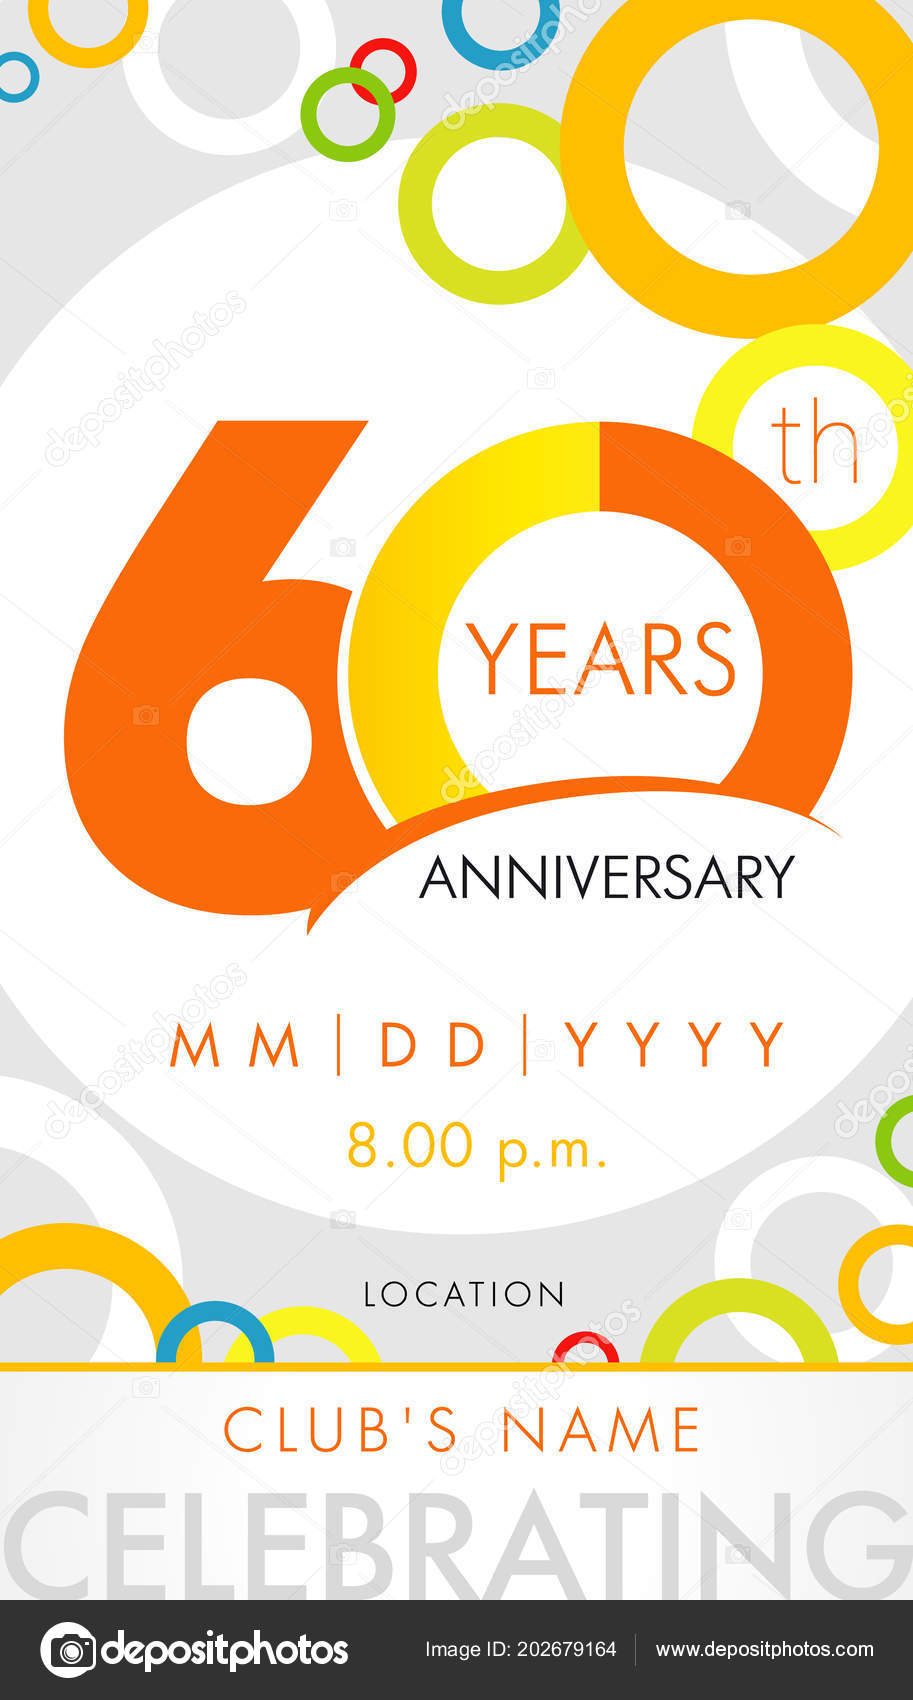 Years anniversary invitation card celebration template concept 60th 60 years anniversary invitation card celebration template concept 60th years anniversary modern design elements with background colored circles stopboris Choice Image